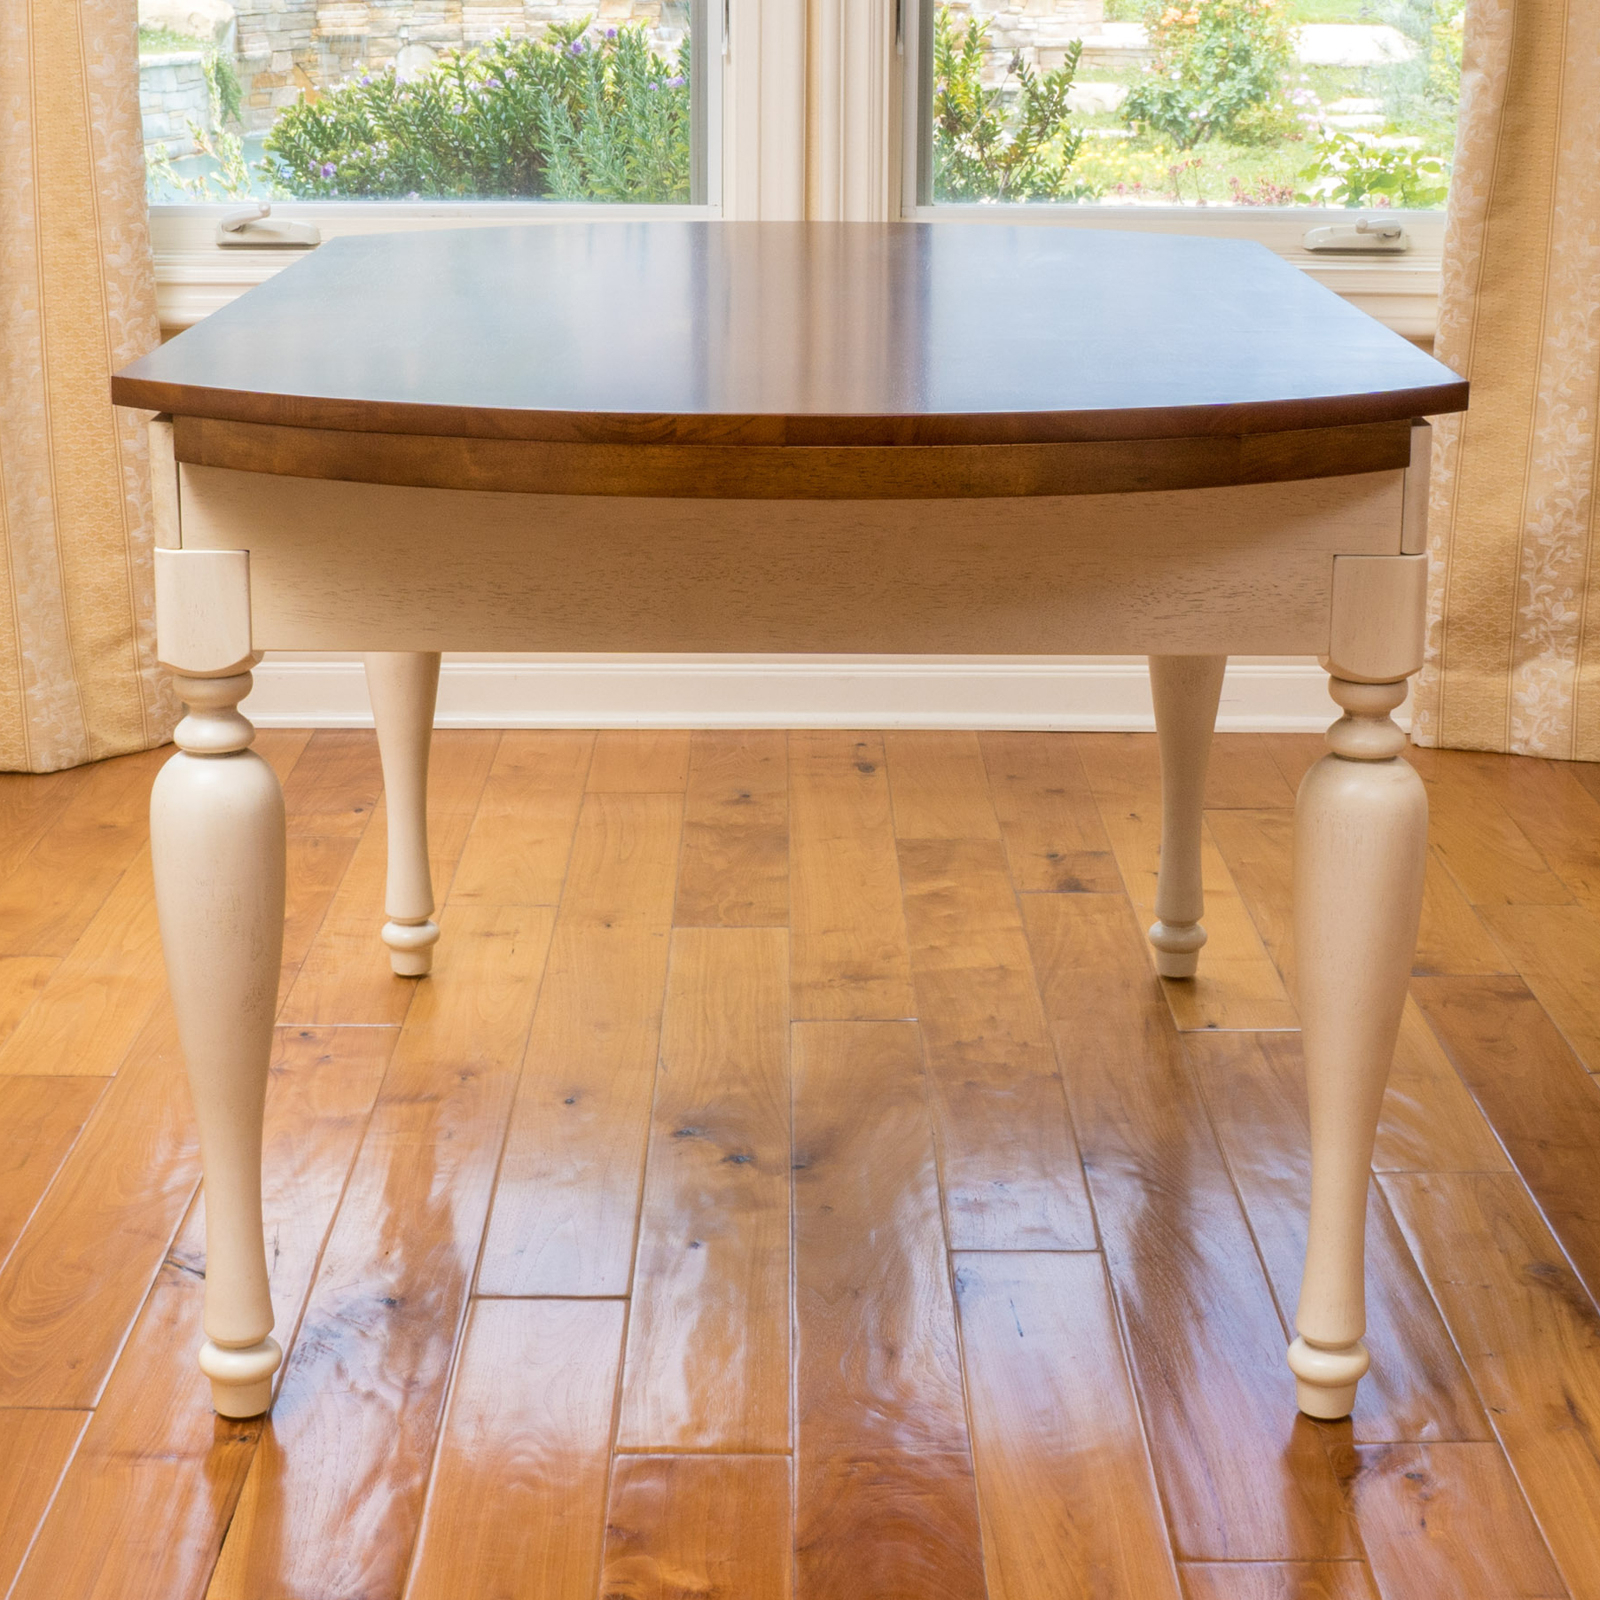 Best Selling Home Allensworth Dining Table With Double Pertaining To Most Up To Date Adams Drop Leaf Trestle Dining Tables (View 14 of 15)